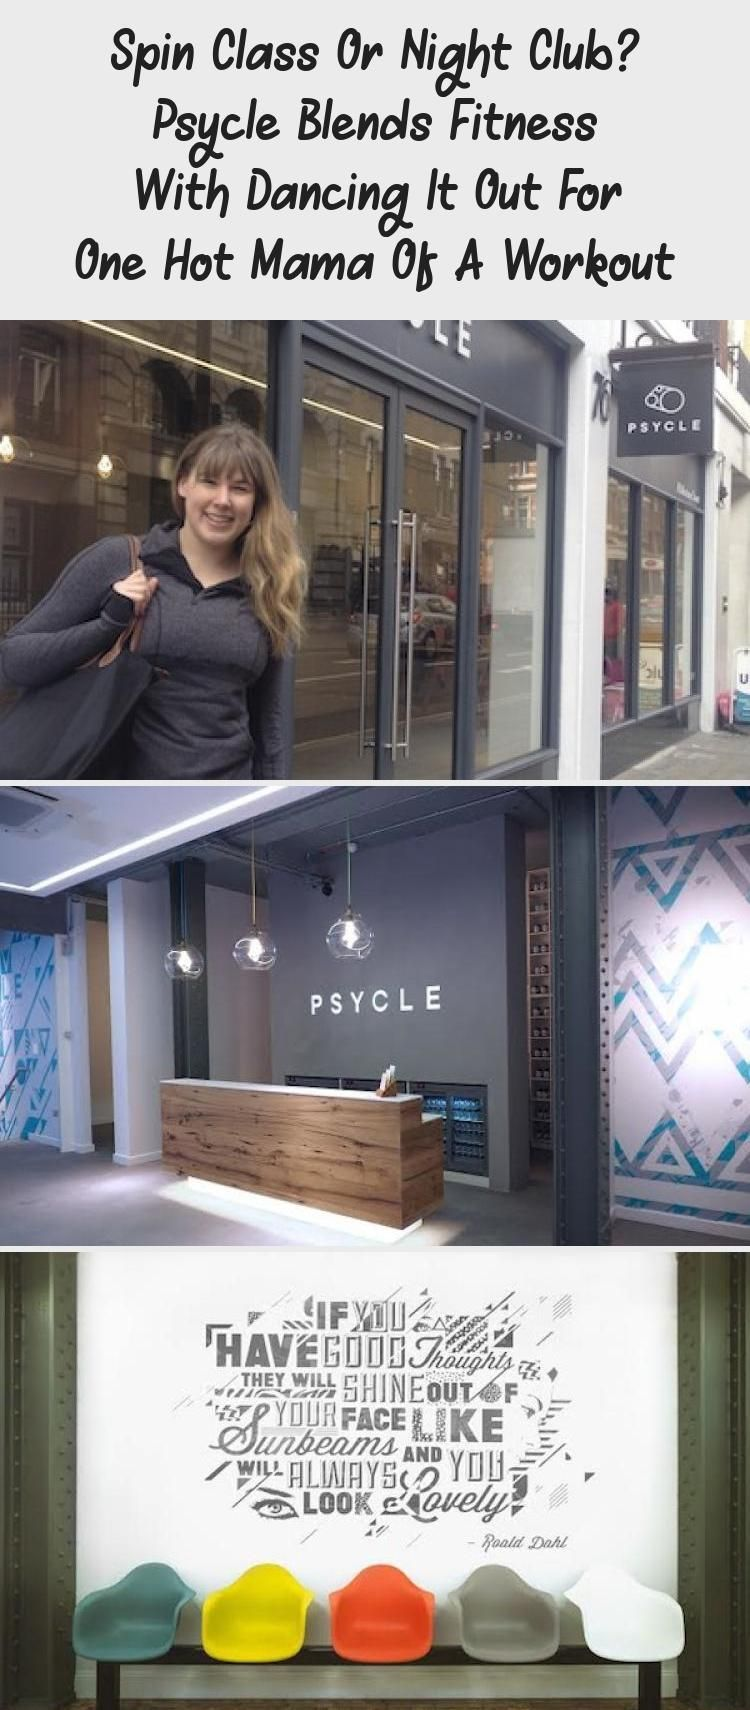 Spin Class Or Night Club? Psycle Blends Fitness With Dancing It Out For One Hot Mama Of A Workout -...